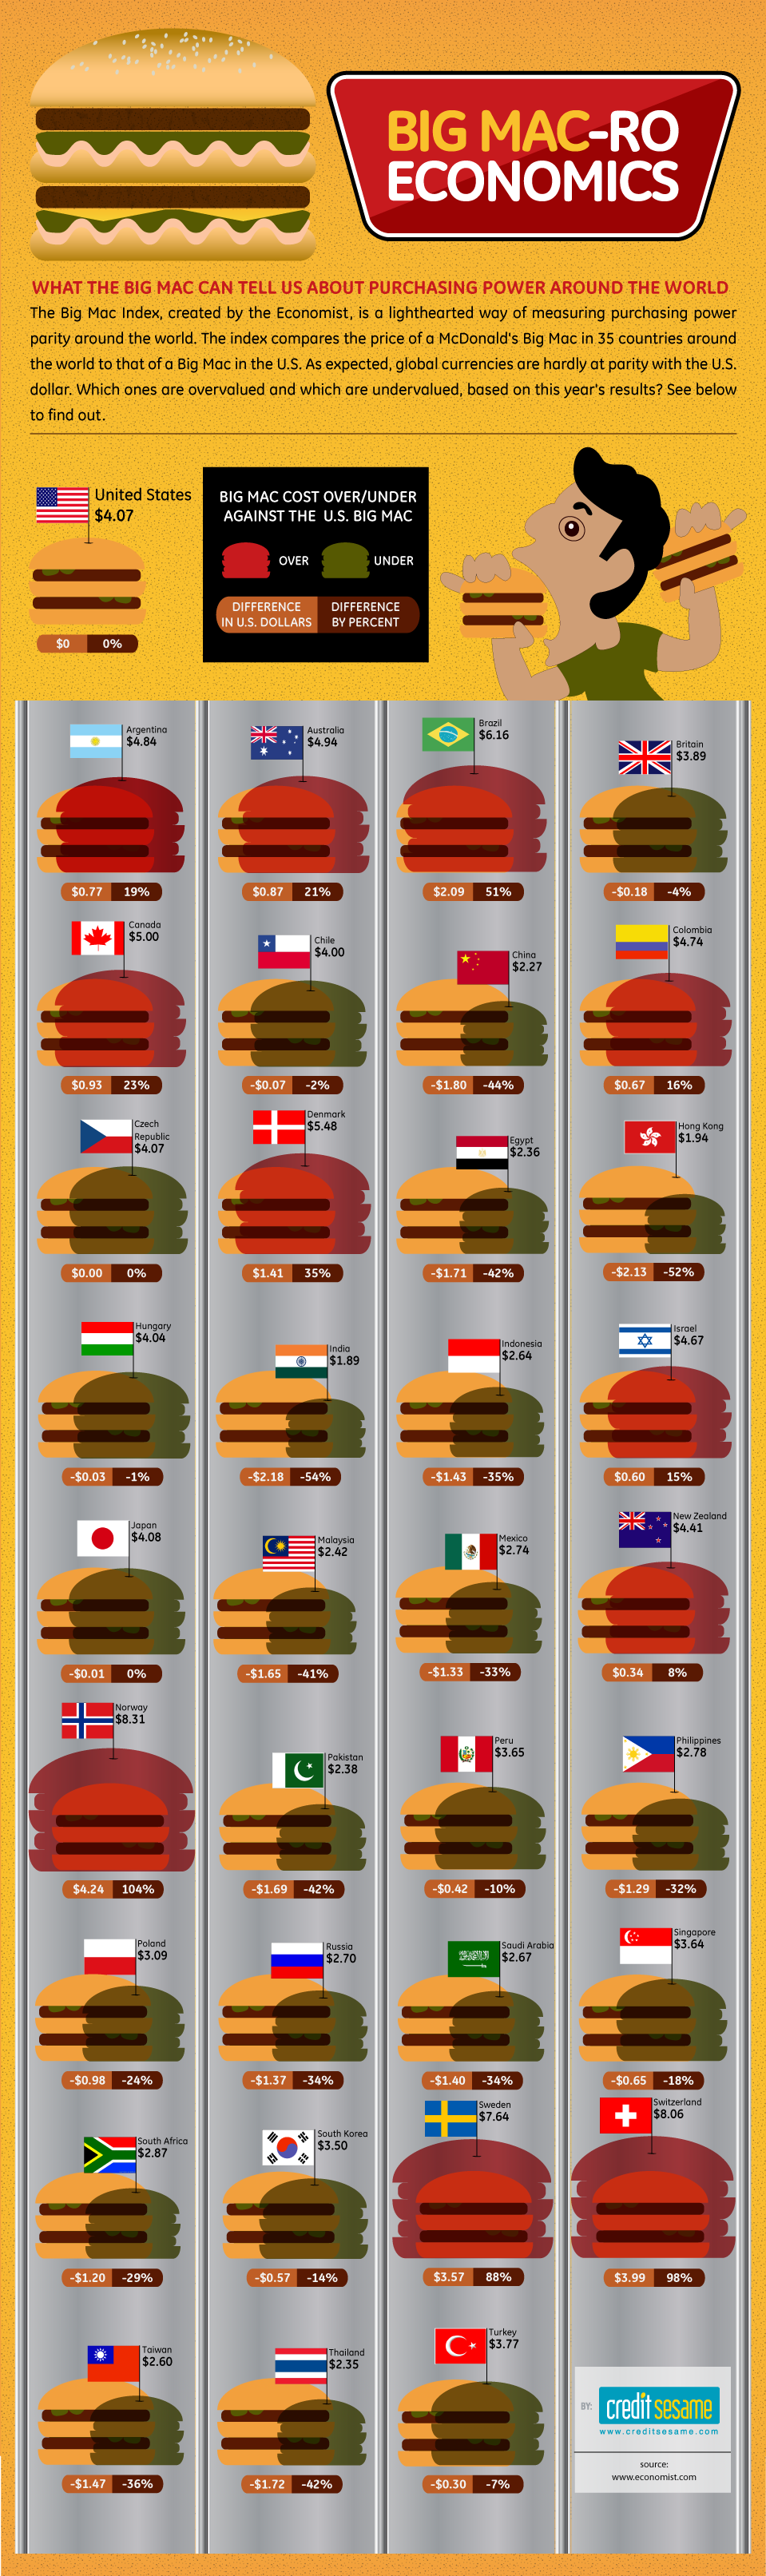 What The Price of a Big Mac Reveals About Purchasing Power Around the World